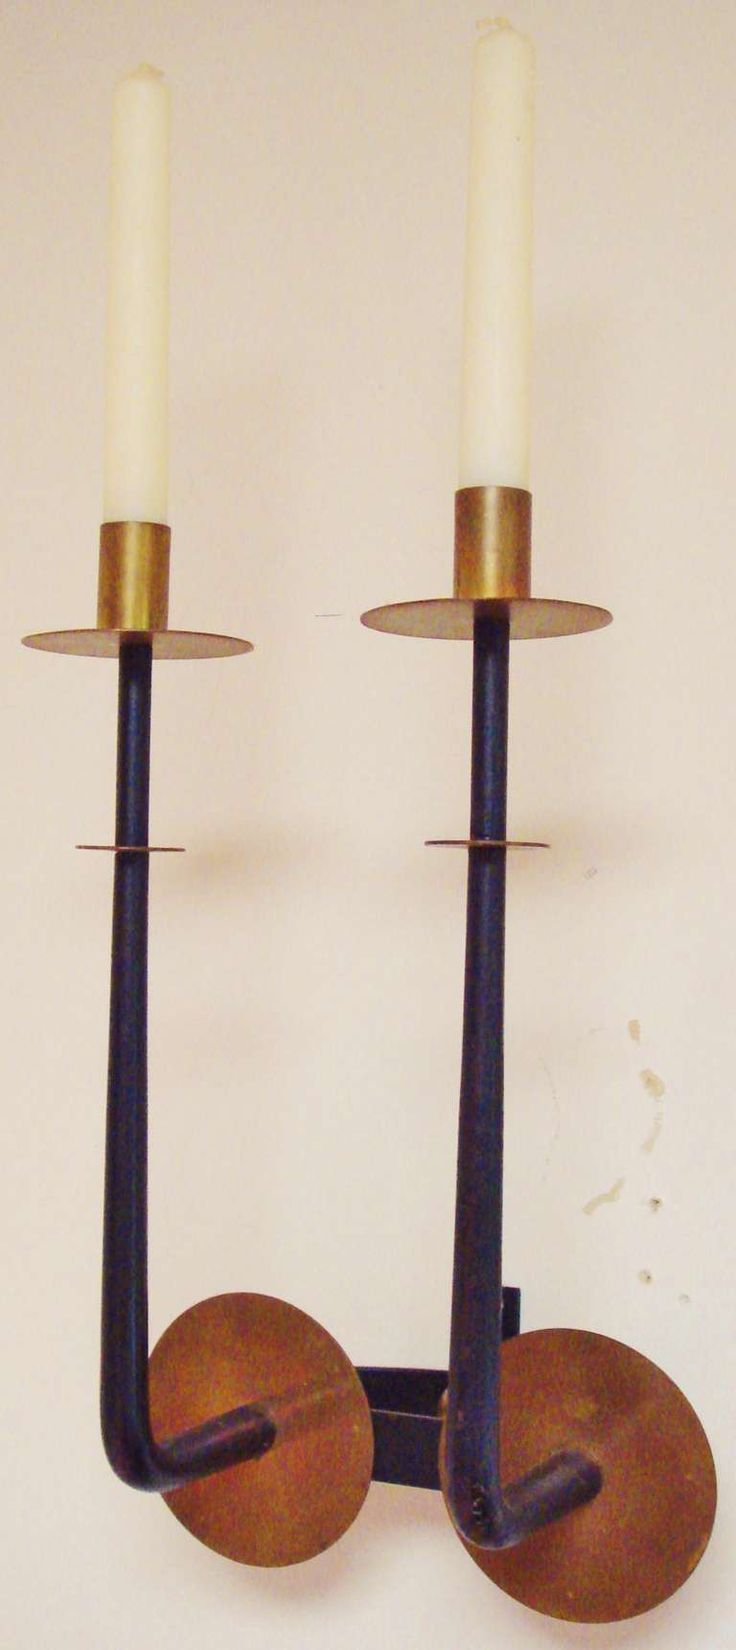 Pair of Large American Midcentury Candle Sconces in the Style of Tommi Parzinger   From a unique collection of antique and modern candleholders and candelabra at http://www.1stdibs.com/furniture/lighting/candleholders-candelabra/